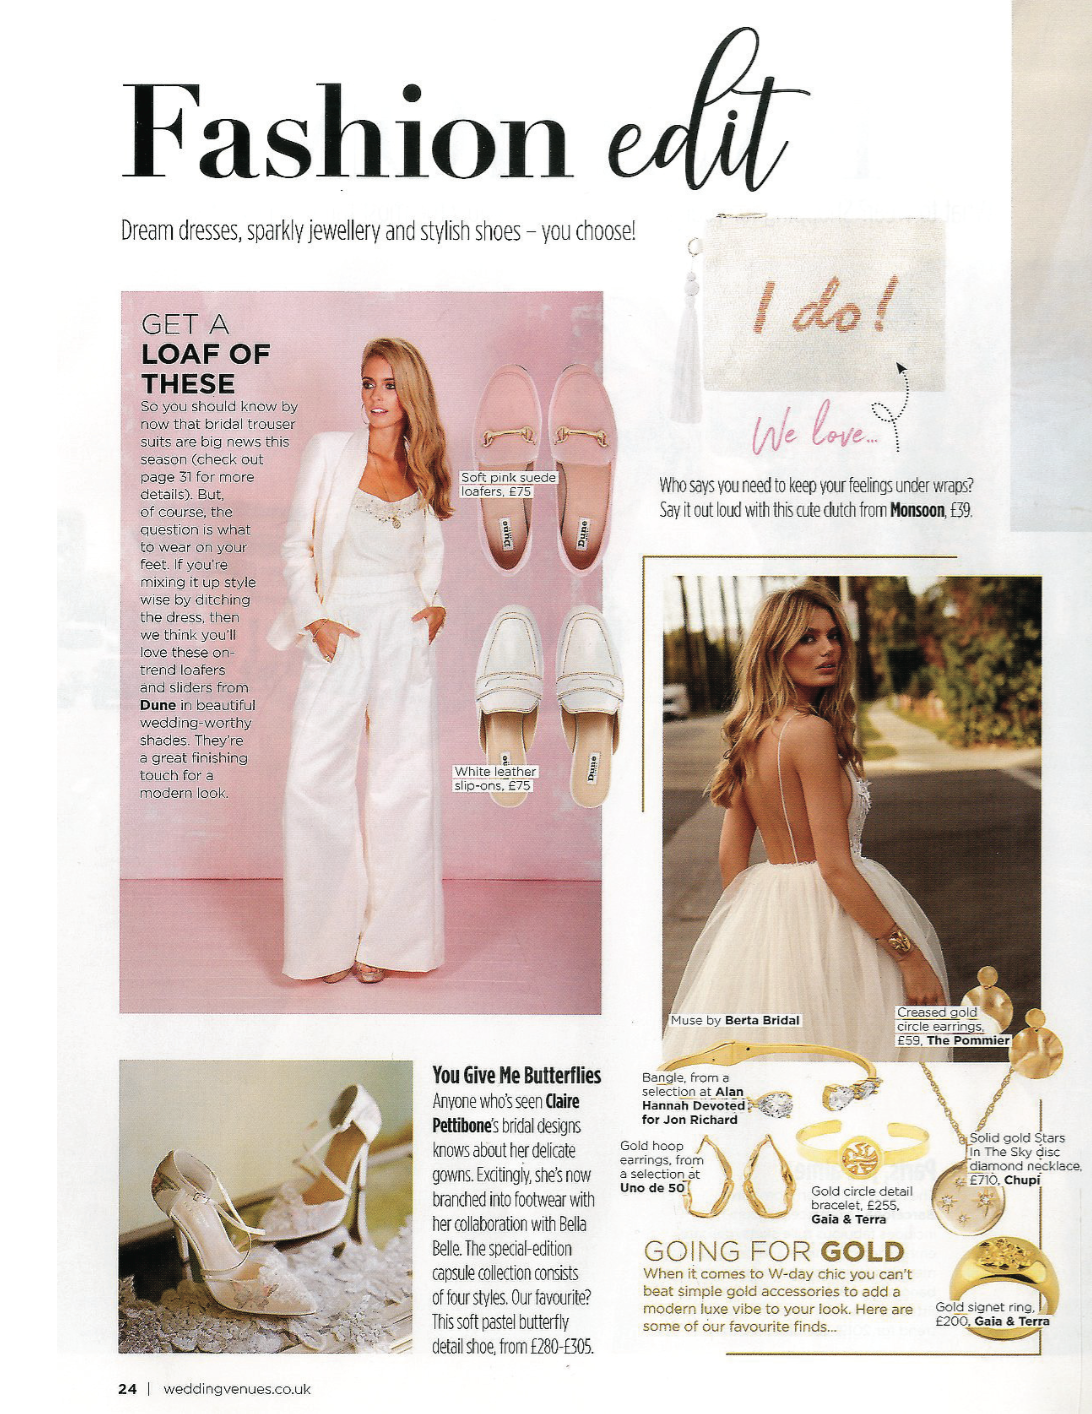 Wedding Venues & Fashion, Jan, Feb & March 2019. Featuring Diploria Circle Bracelet and Diploria Unisex Signet Ring.